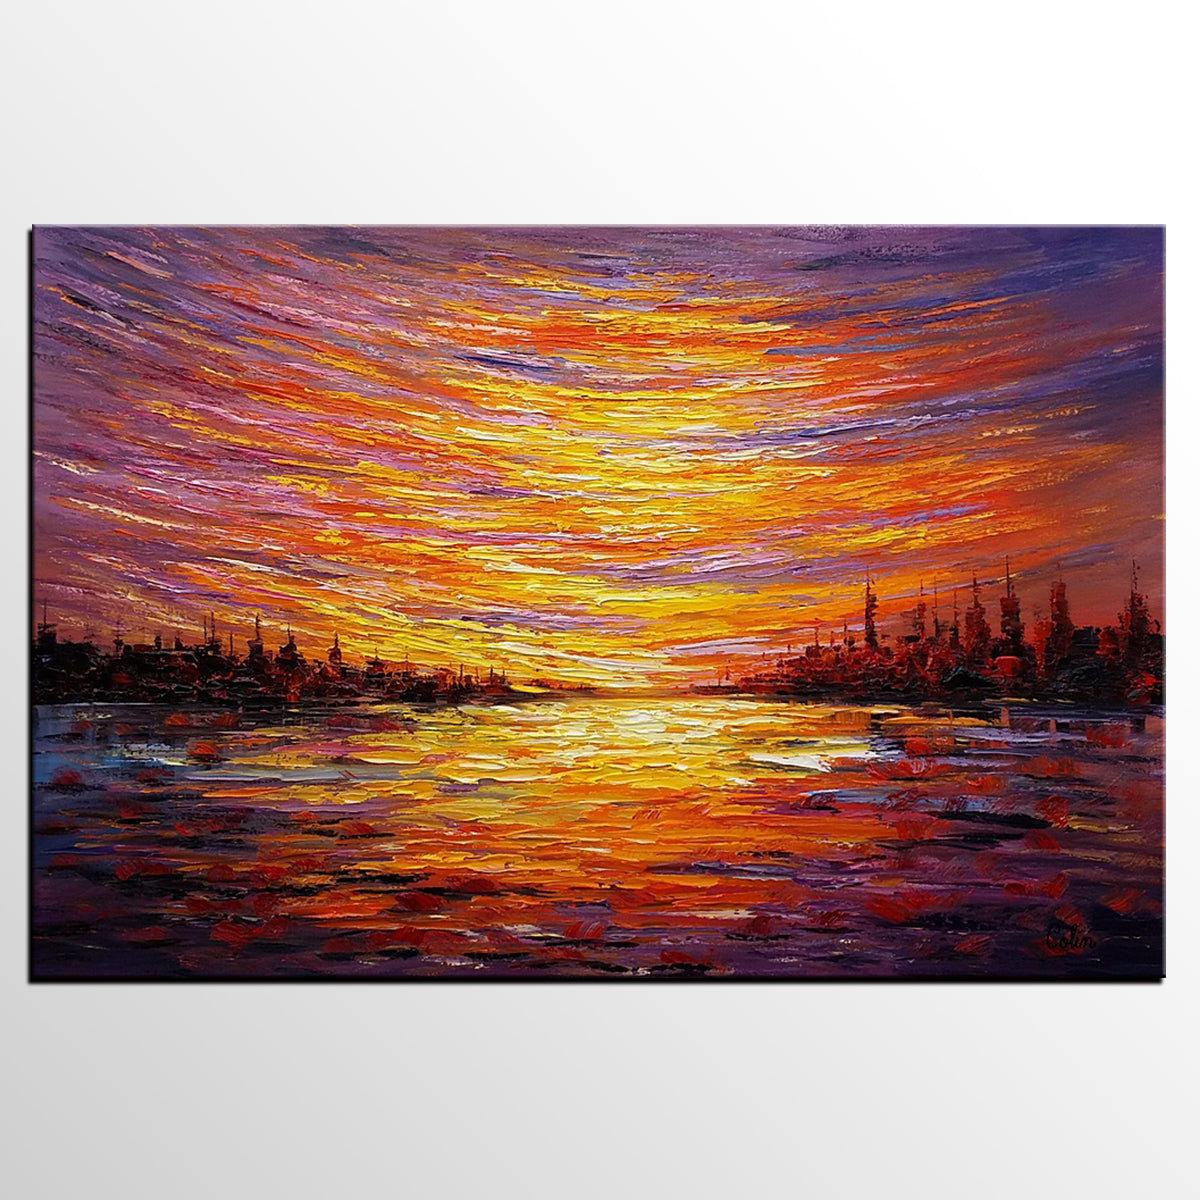 Landscape Painting, Large Wall Art, Canvas Art, Abstract Art, Original Artwork, Canvas Painting, Modern Art, Oil Painting 220